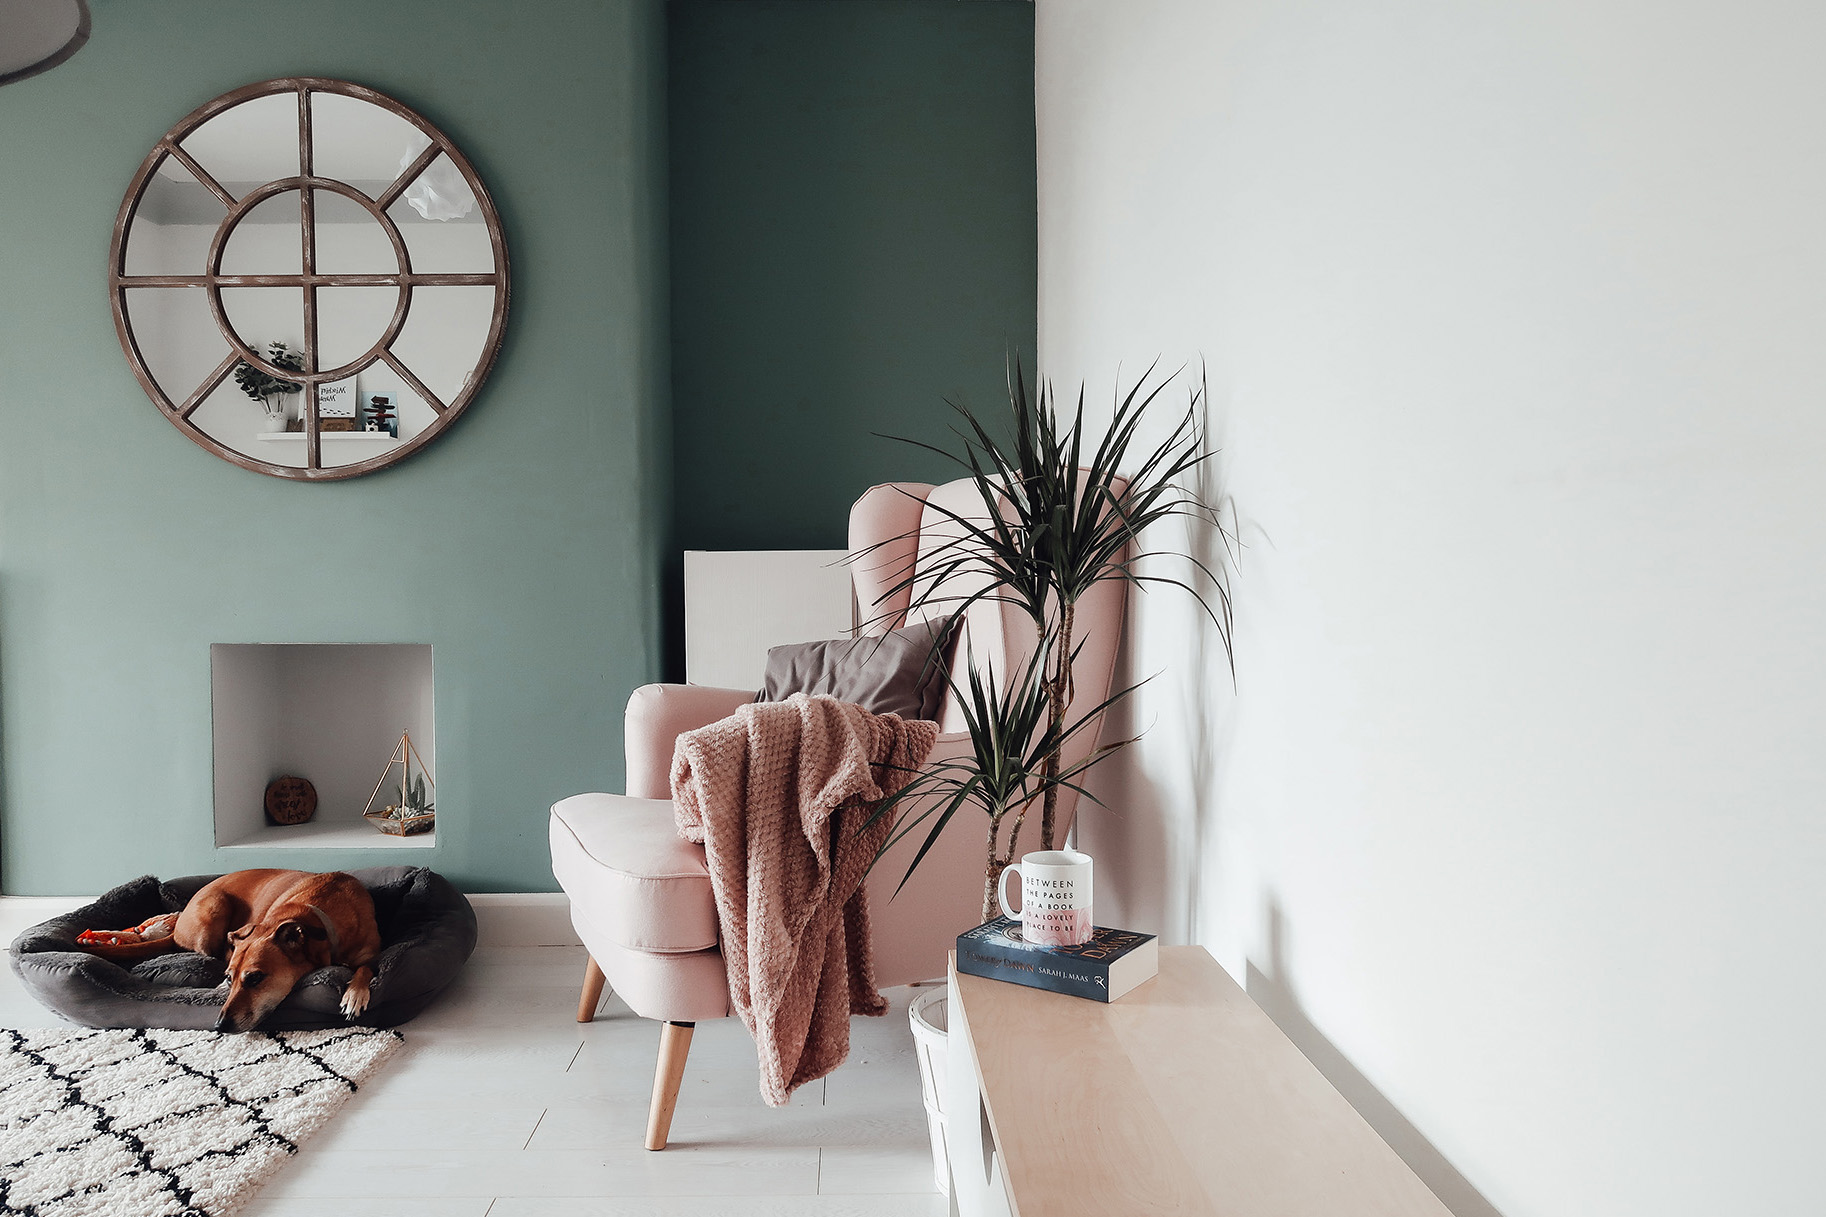 hygge home cosy blanket green walk inspiration